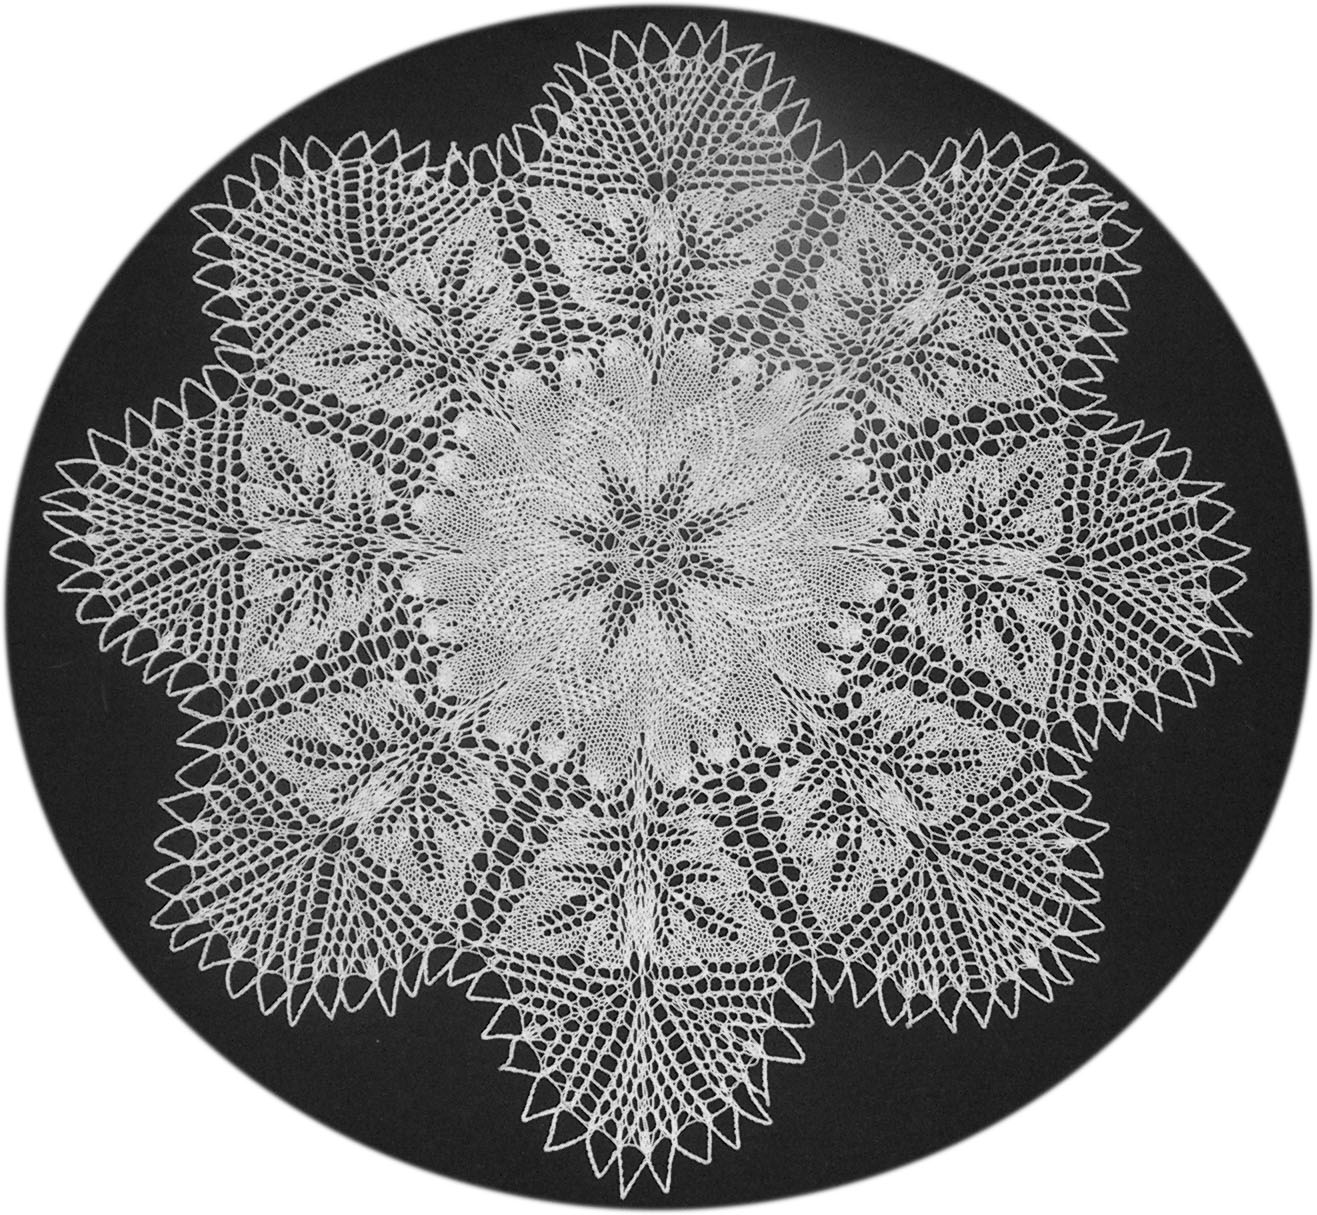 Lace Knitting Patterns In The Round : Doilyheads Blog Adventures In Lace Knitting (?or Raising Herbert Niebl...